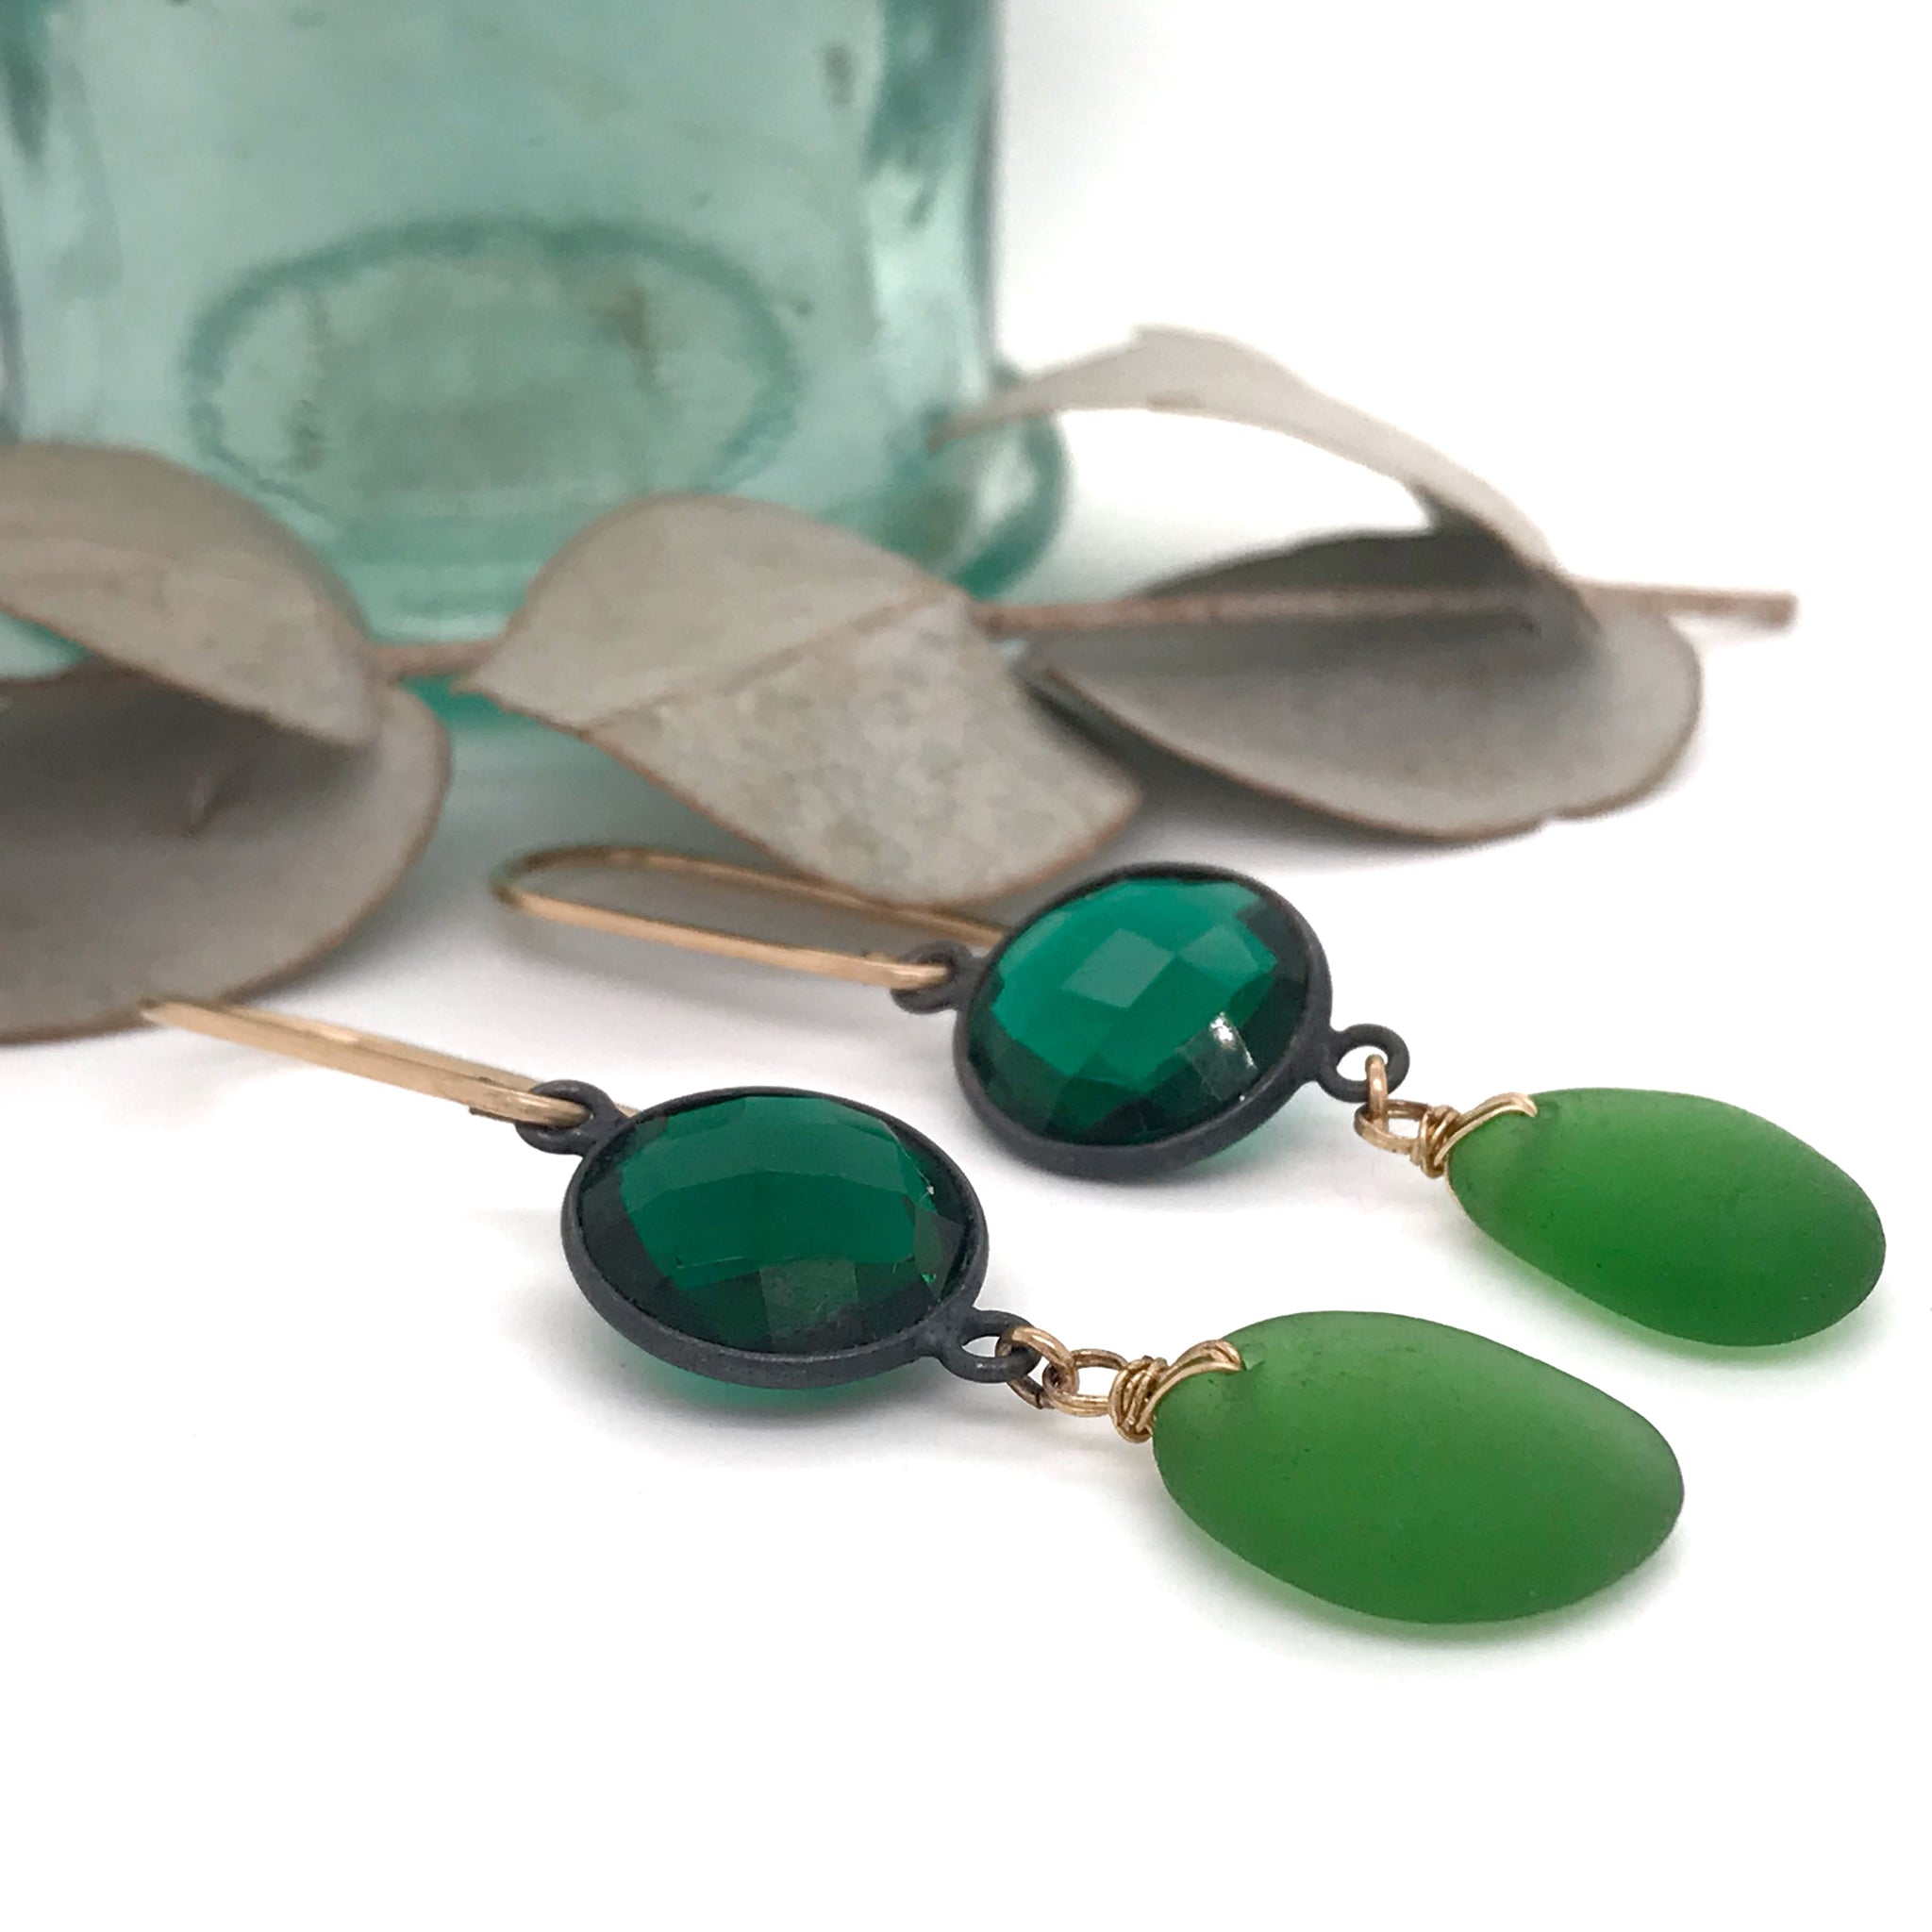 lime green sea glass with green quartz dangly earrings Christmas gift for women kriket broadhurst jewellery Sydney